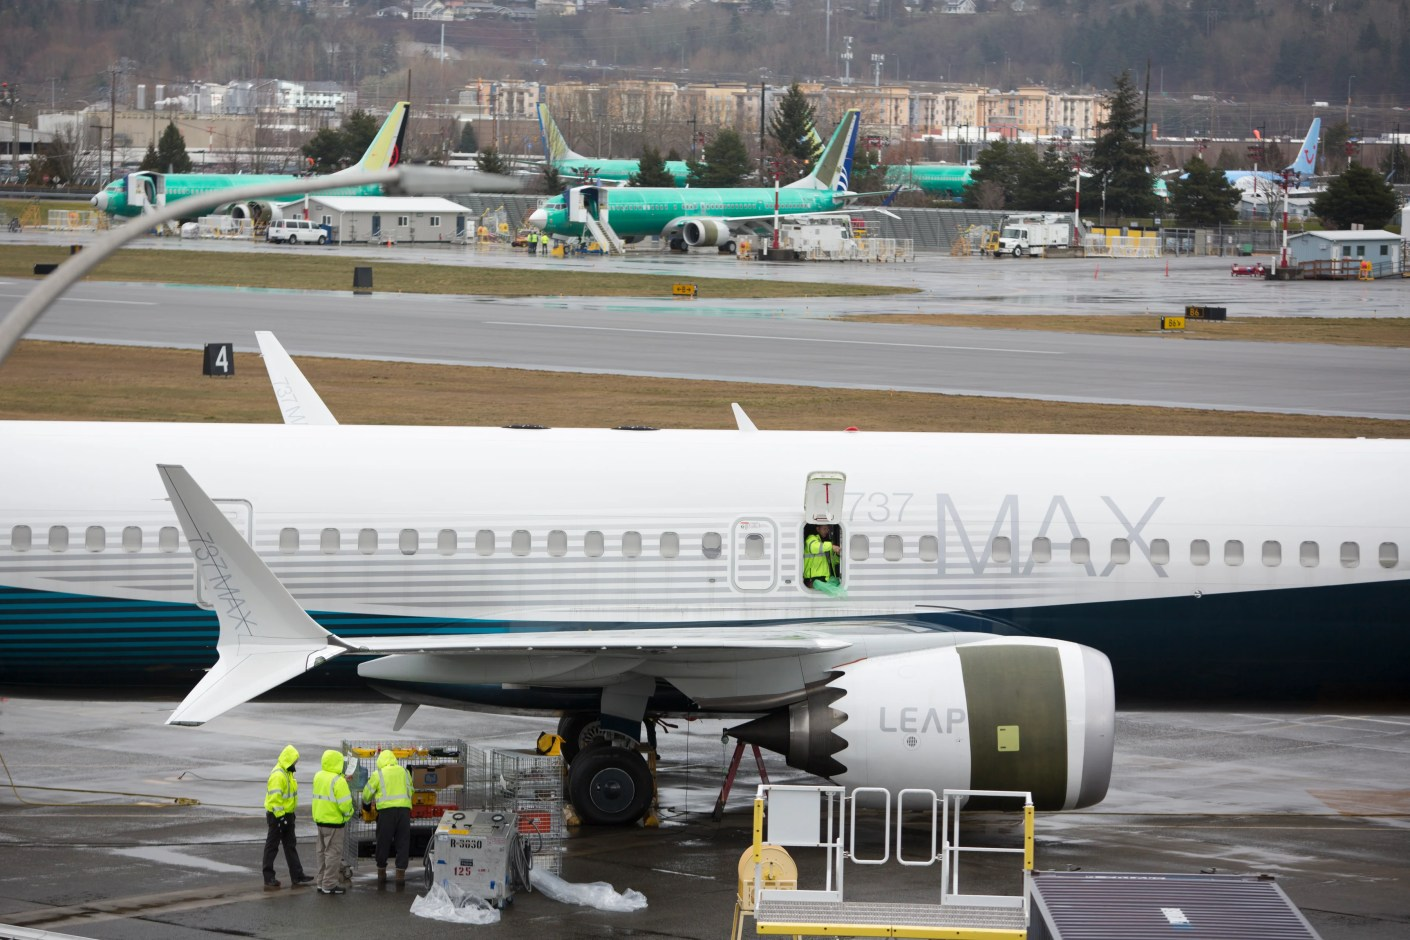 """Workers are pictured next to a Boeing 737 MAX 9 airplane on the tarmac at the Boeing Renton Factory in Renton, Washington on March 12, 2019. - US President Donald Trump on March 13, 2019, announced a plan to ground all Boeing 737 MAX aircraft amid intense international and political pressure following the second deadly crash in less than five months. """"We"""